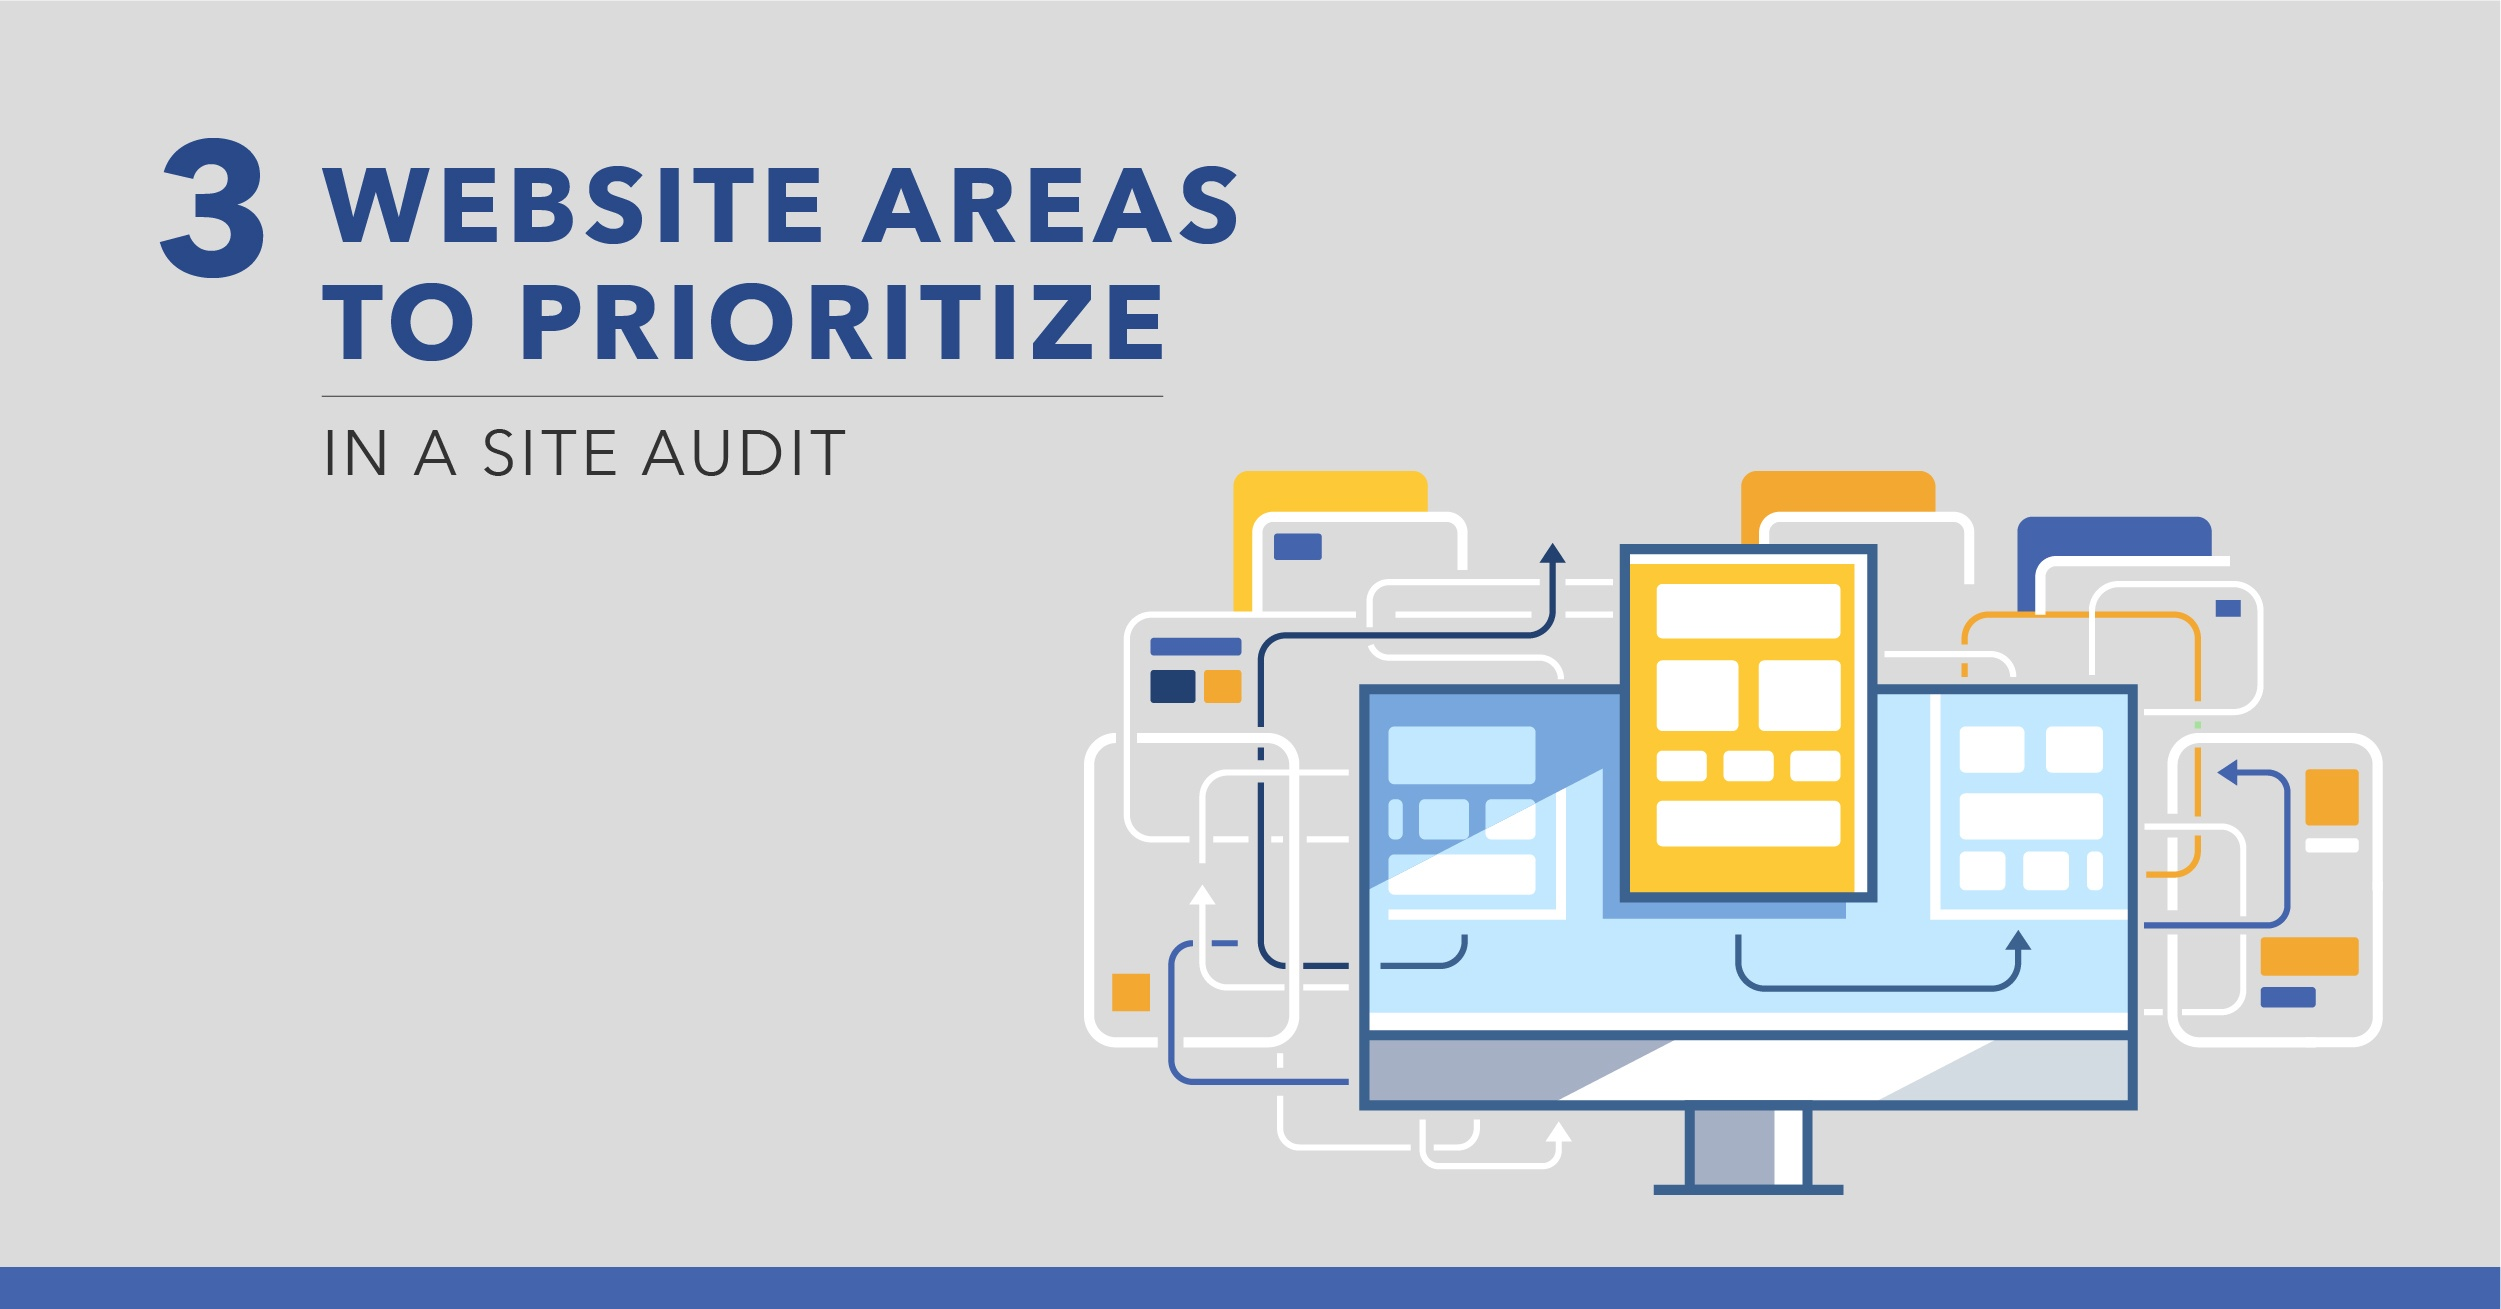 3 Website Areas to Prioritize in a Site Audit